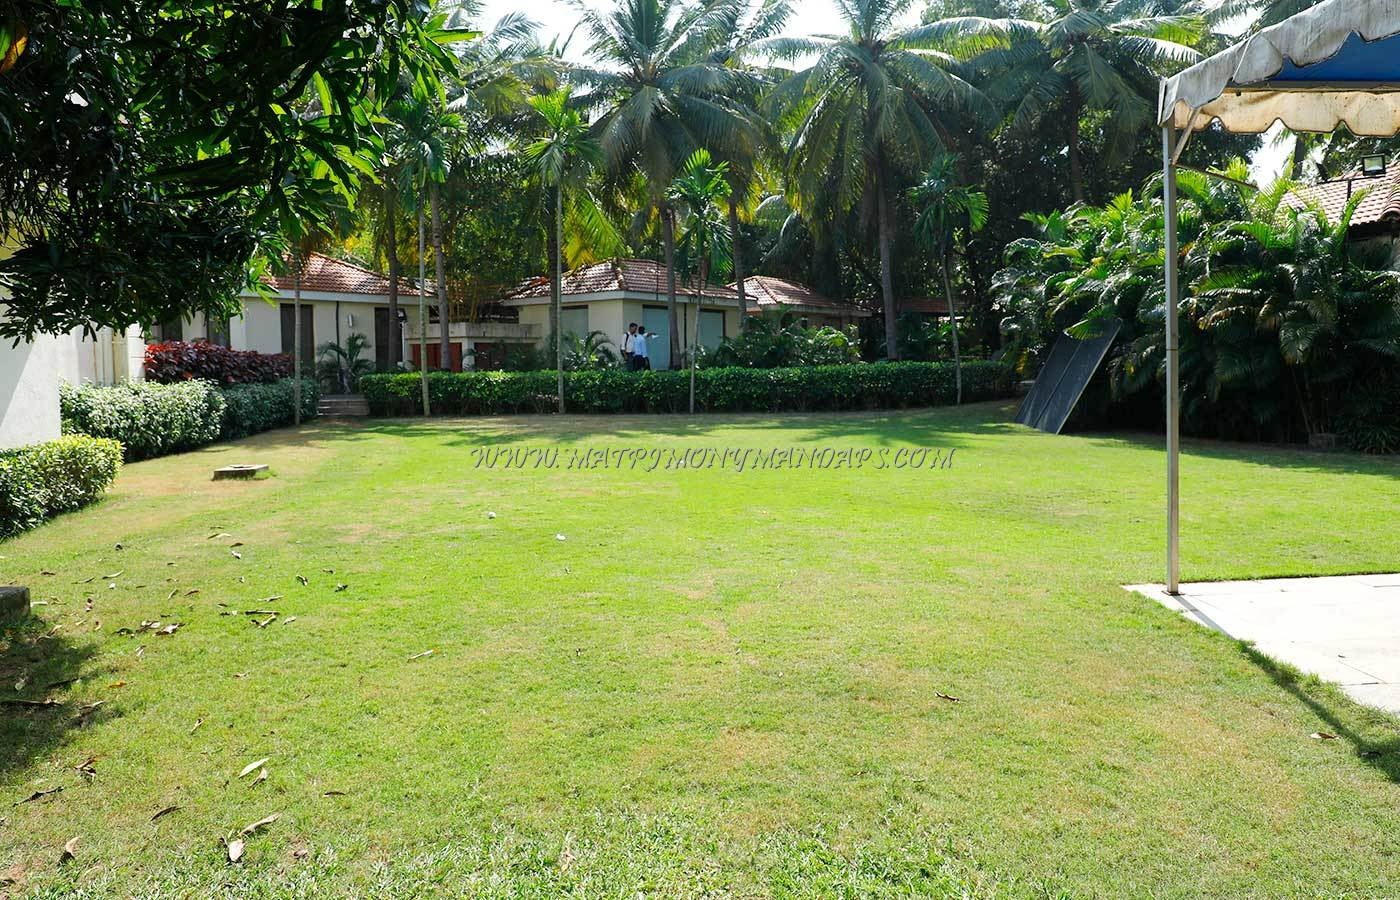 Find the availability of the Esthell Resort Pandian Open Lawn in ECR, Chennai and avail special offers